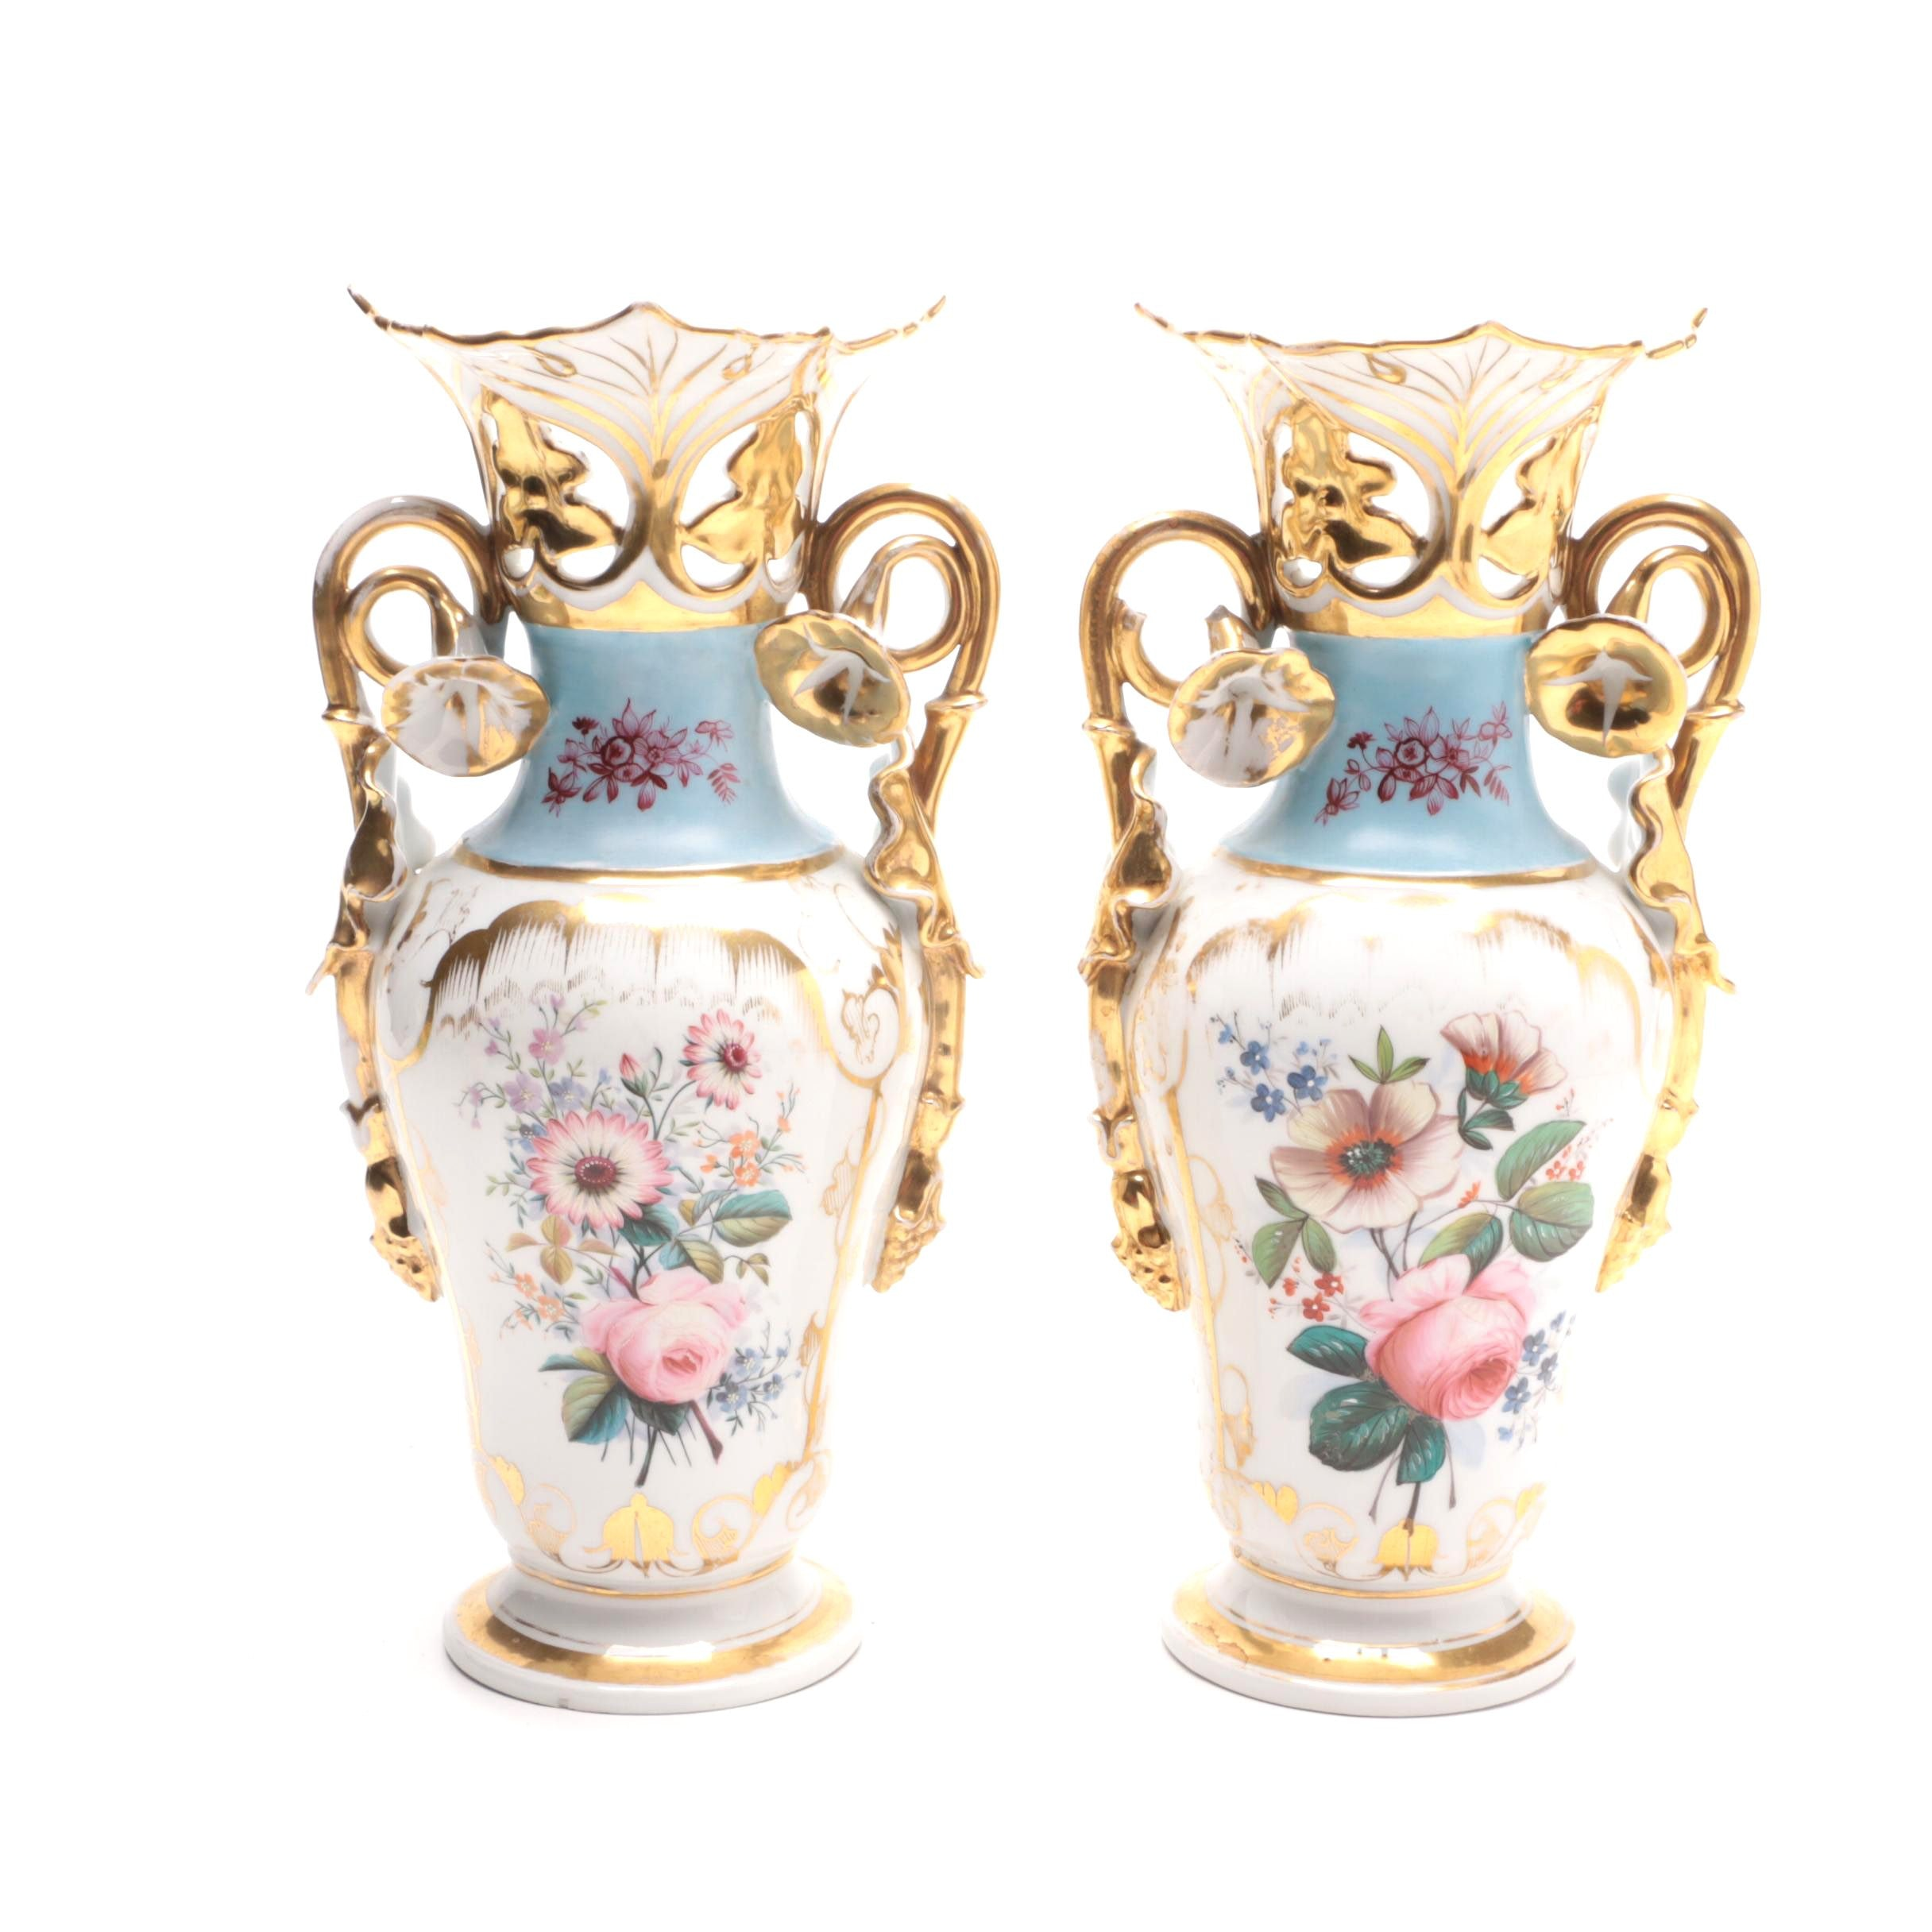 Pair of Hand-Painted Porcelain Vases